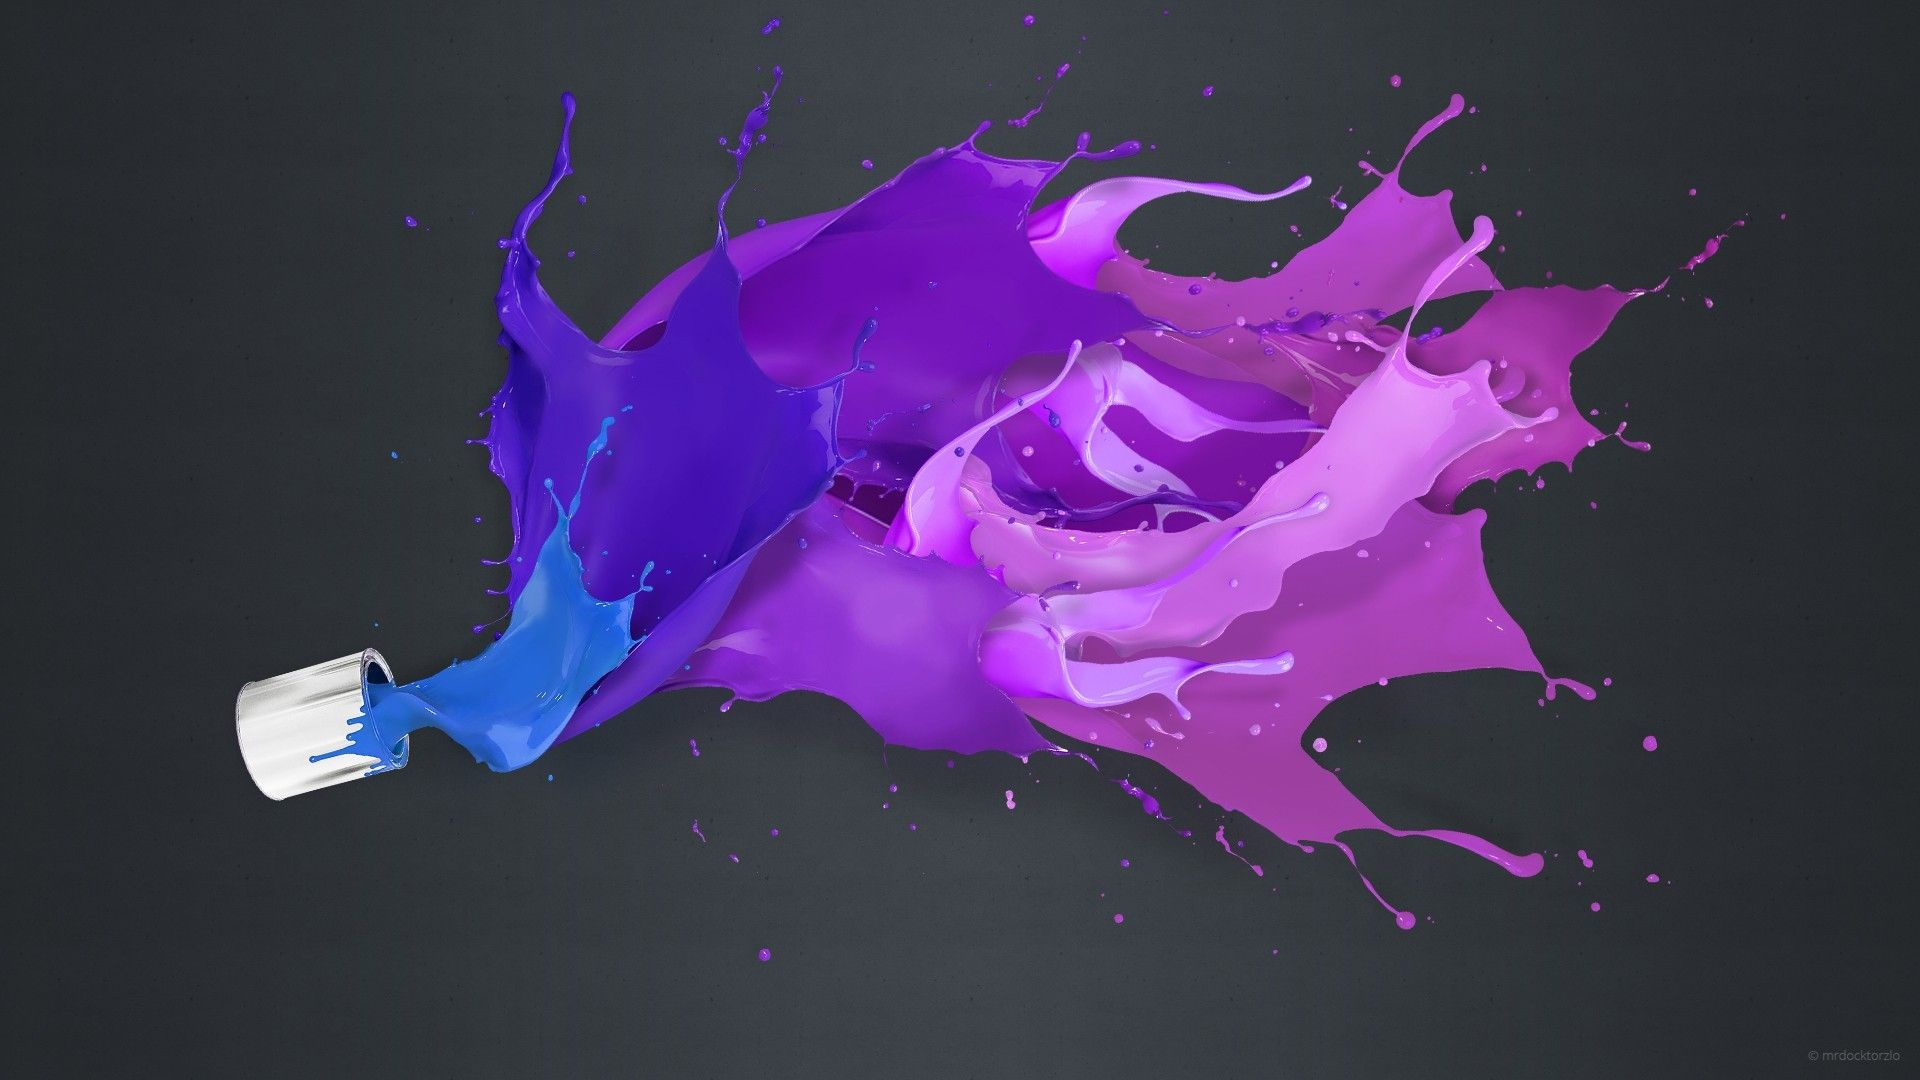 Paint Color Splash Background Wallpaper 1920x1080 76611 Abstract Art Wallpaper Digital Wallpaper Art Wallpaper